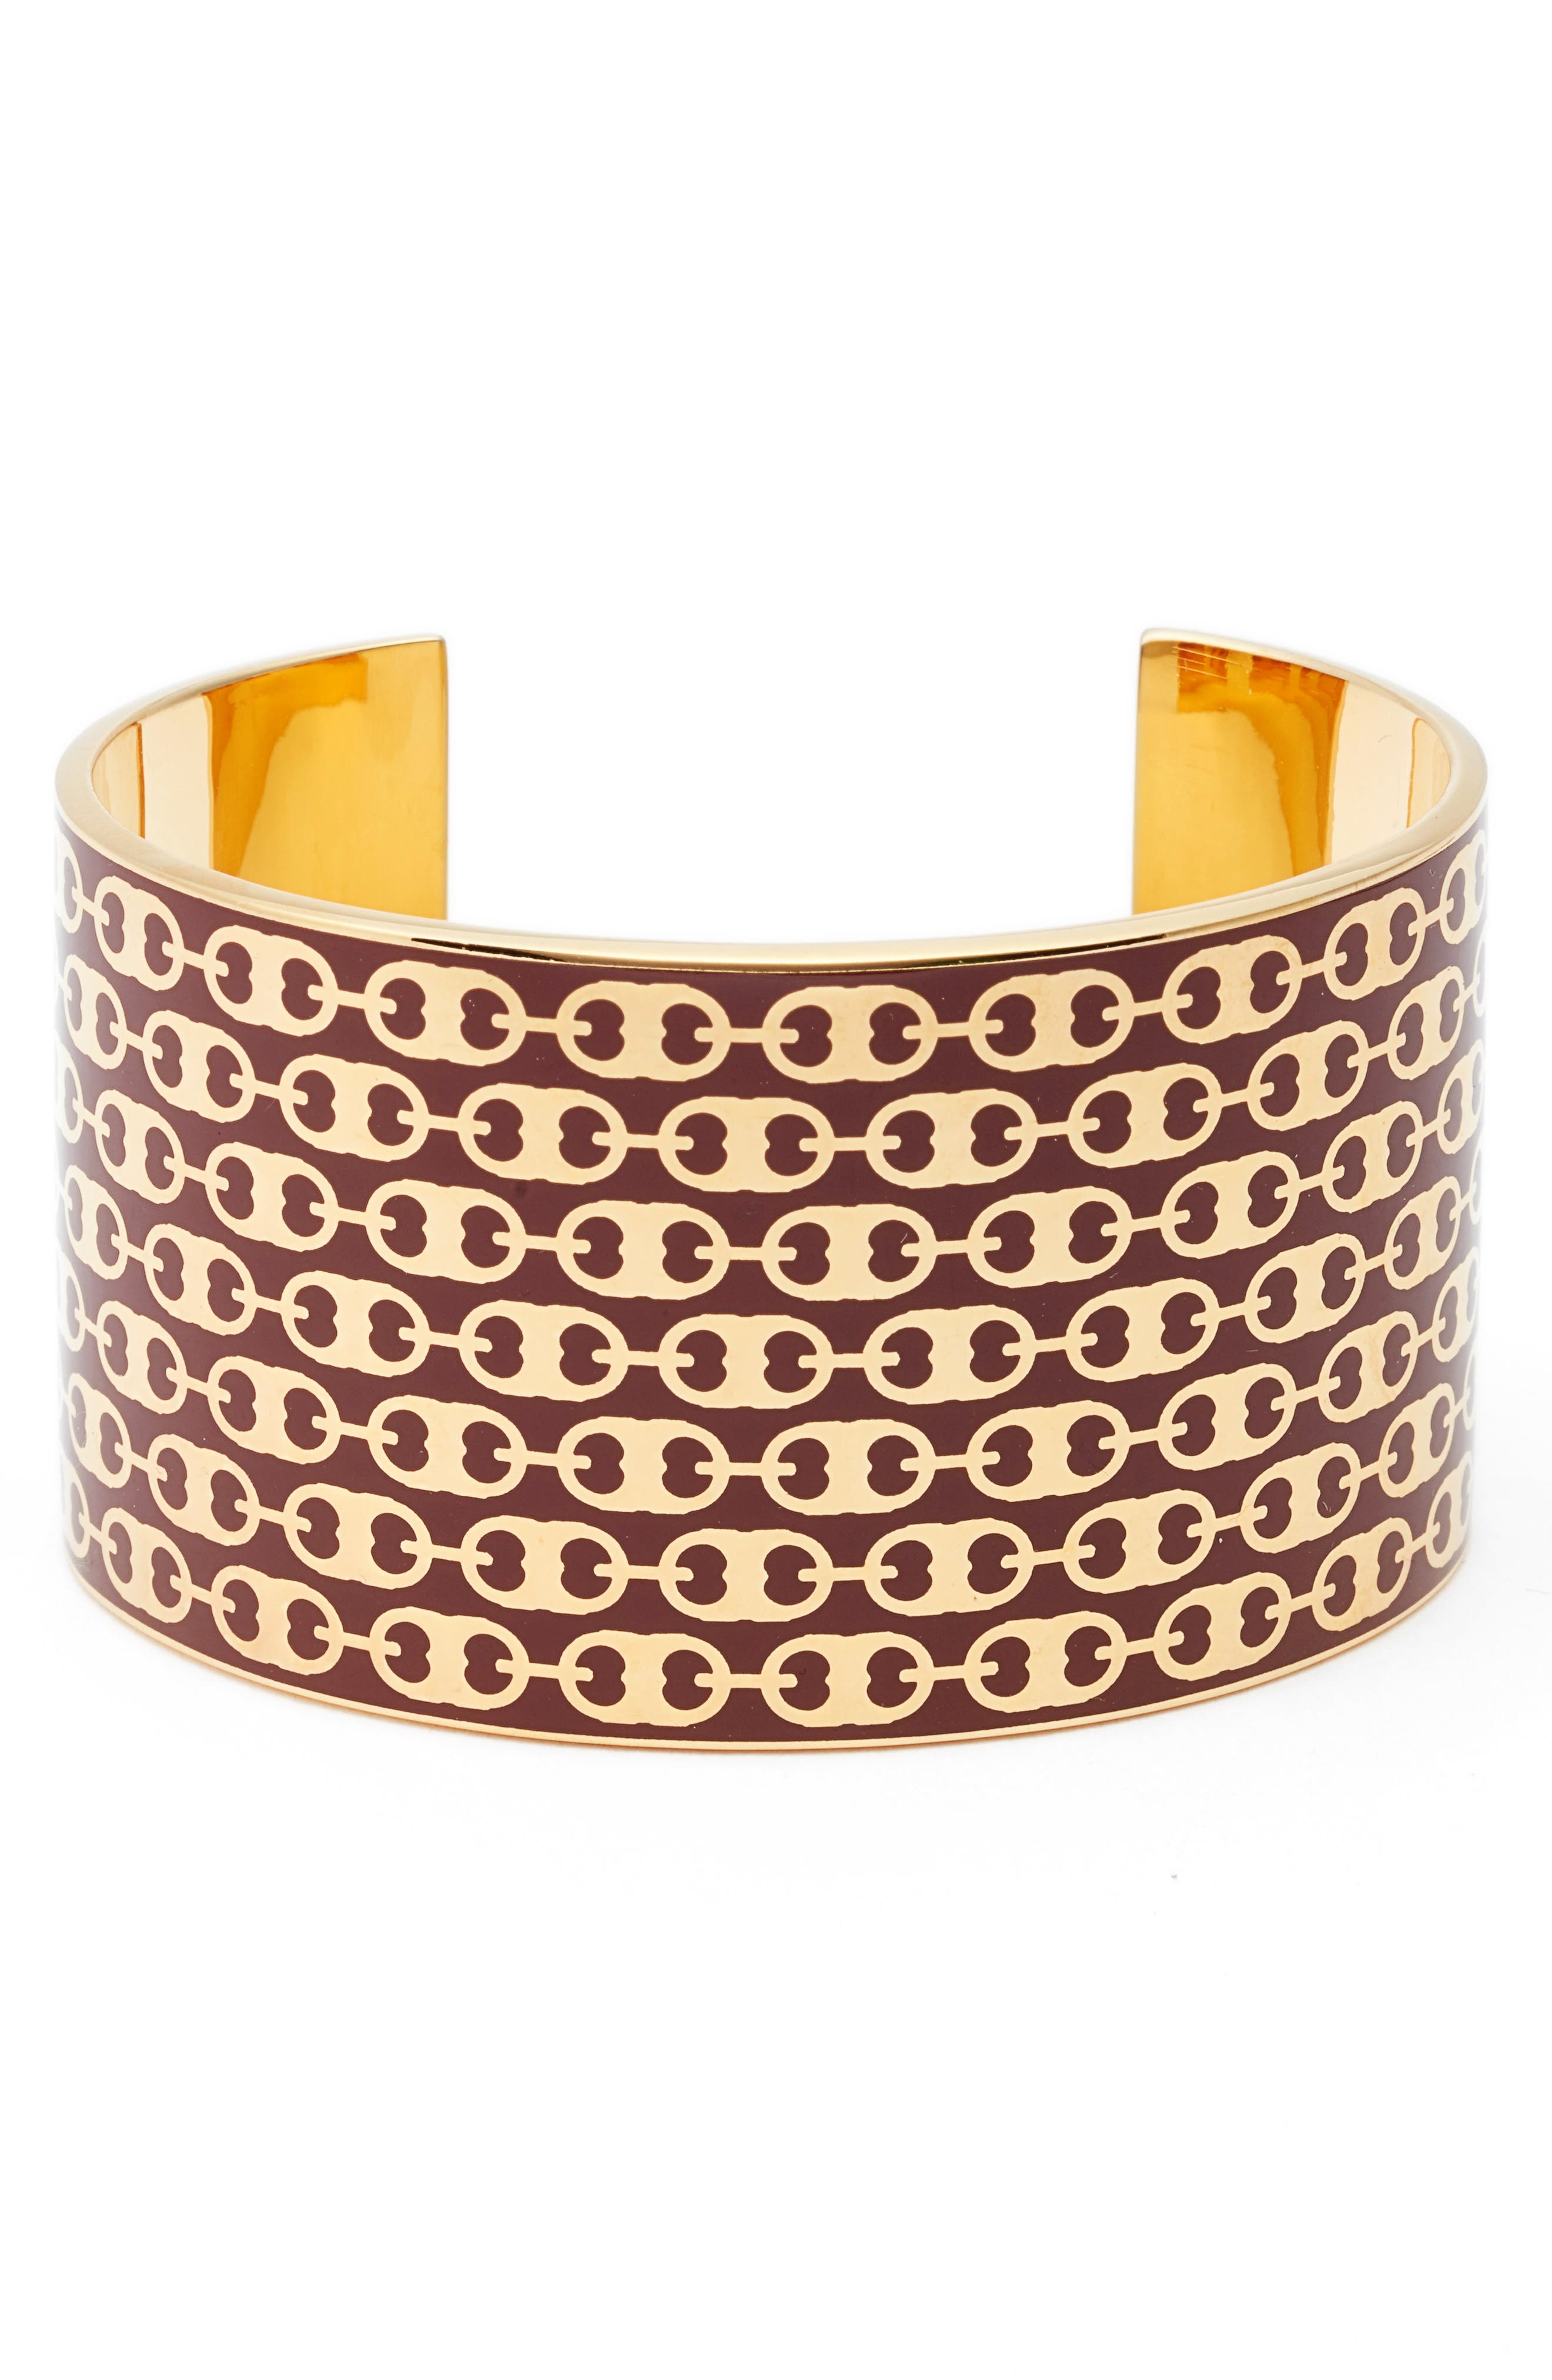 Gemini Link Wide Cuff,                             Main thumbnail 1, color,                             Tuscan Wine / Tory Gold